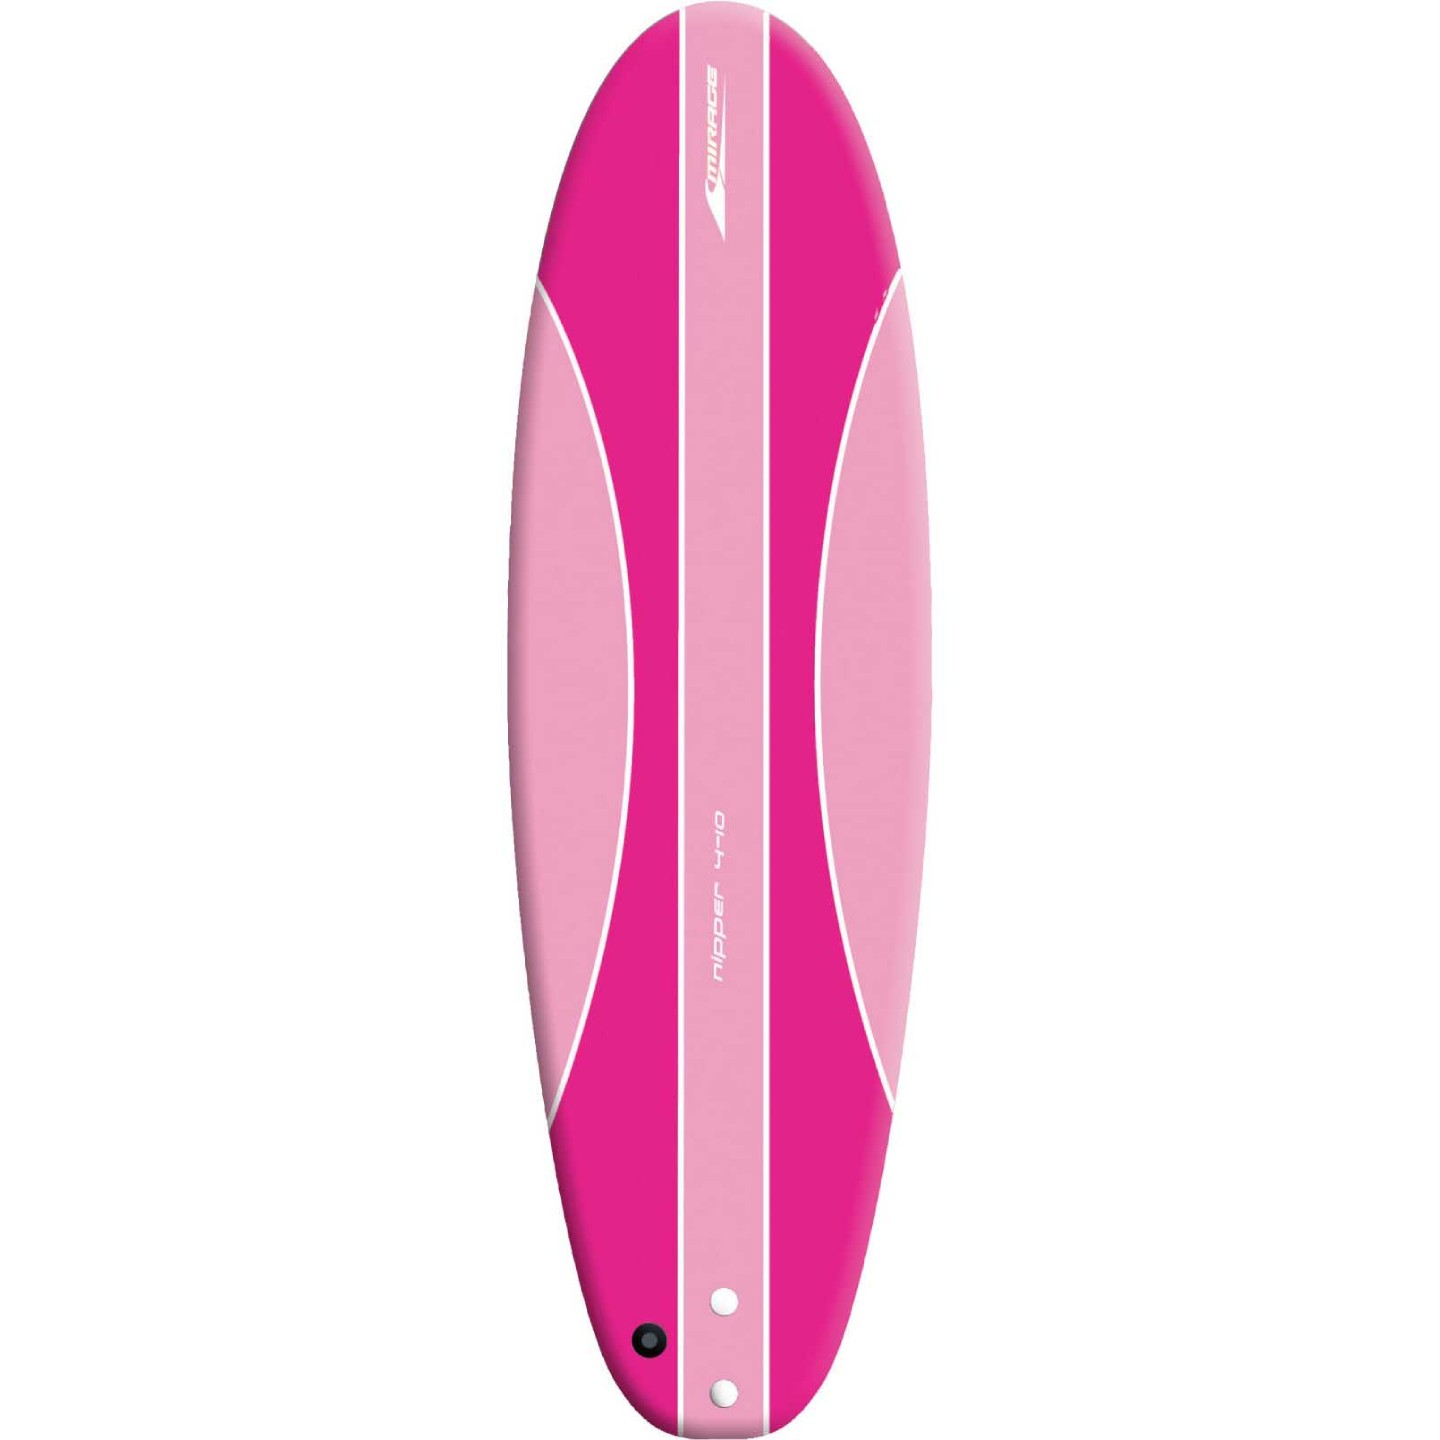 Mirage-Nipper-Kids-Foam-Surfboard-4-039-10-034-Pink